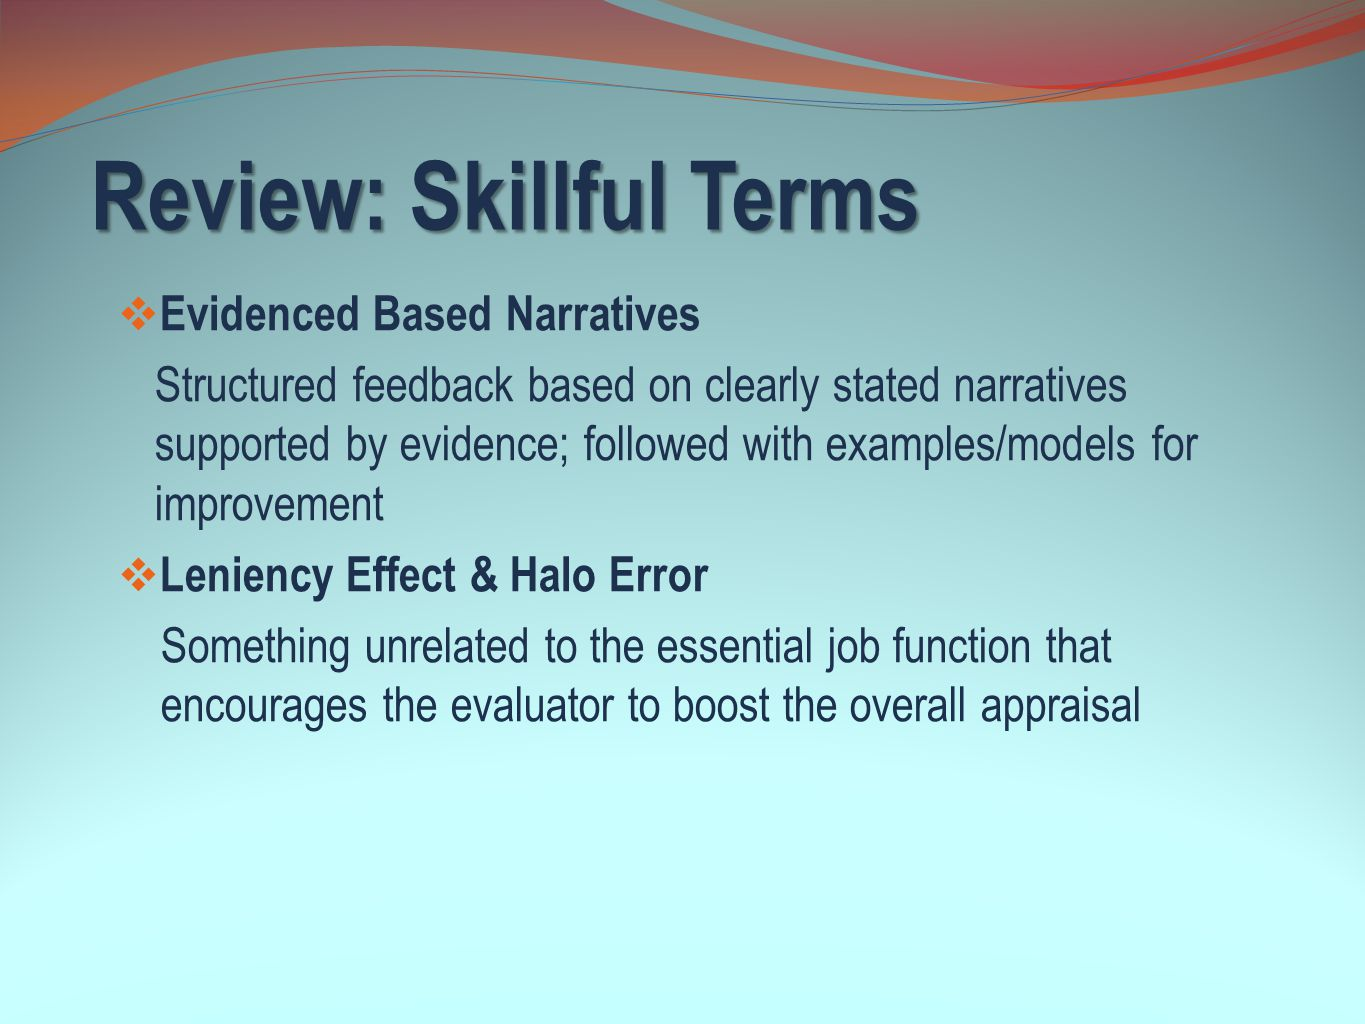 Review: Skillful Terms